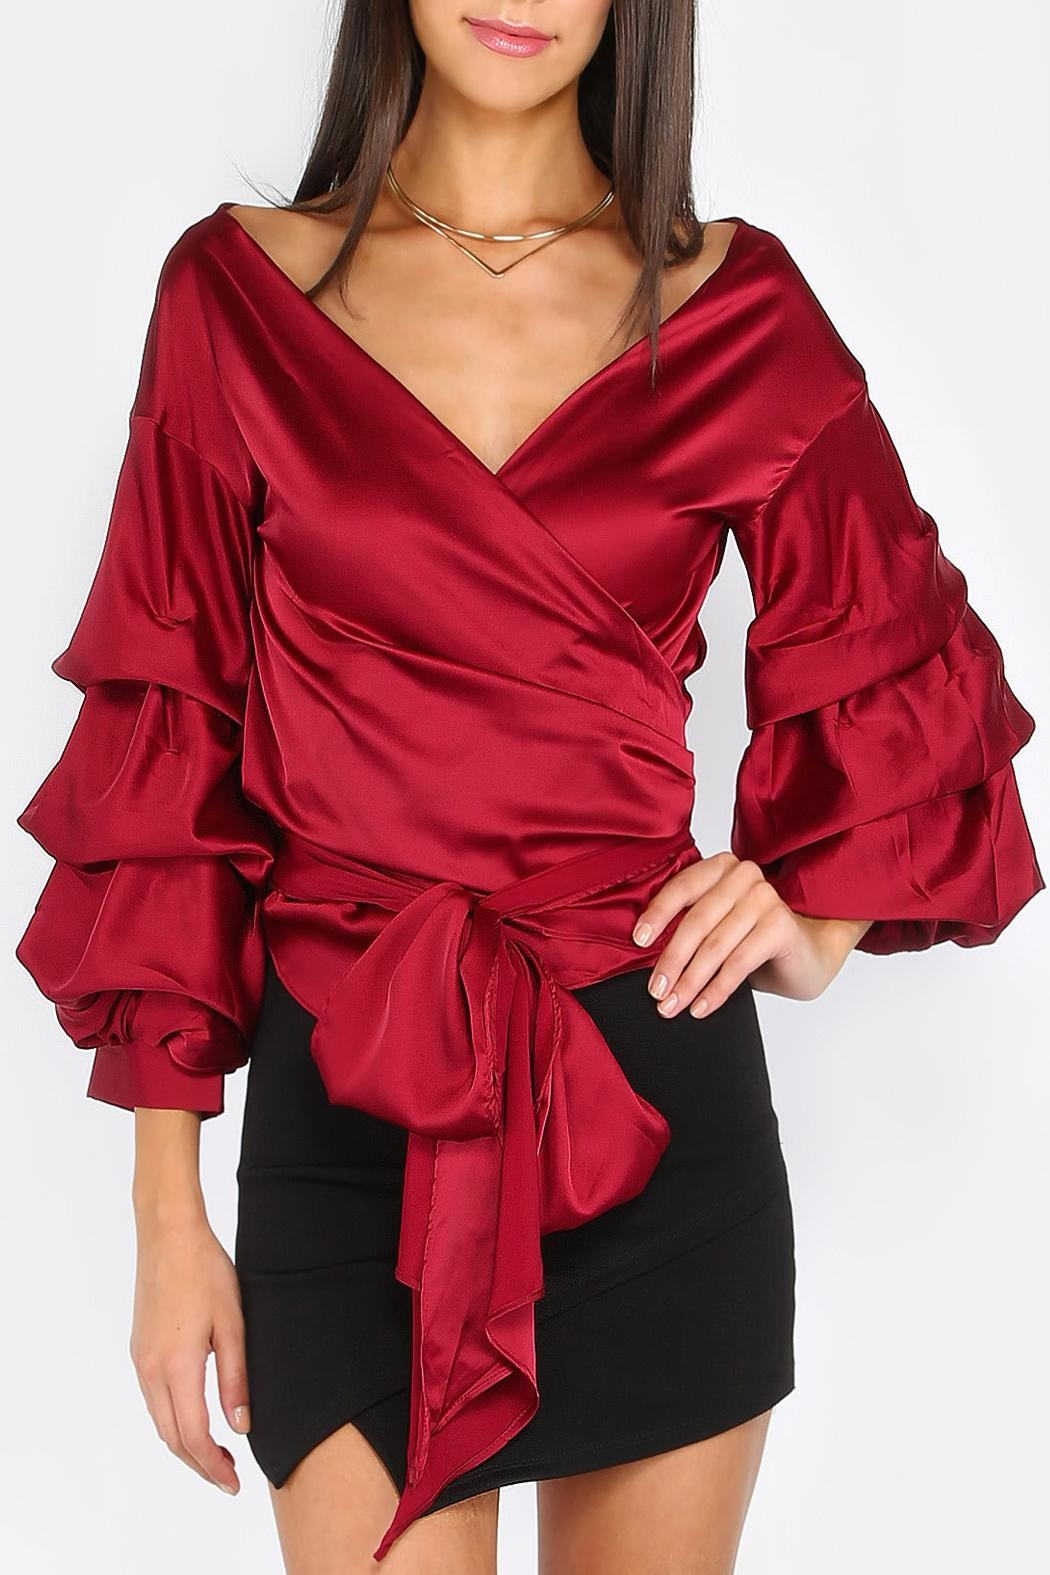 House of Atelier Billow Sleeve Wrap Top - Main Image